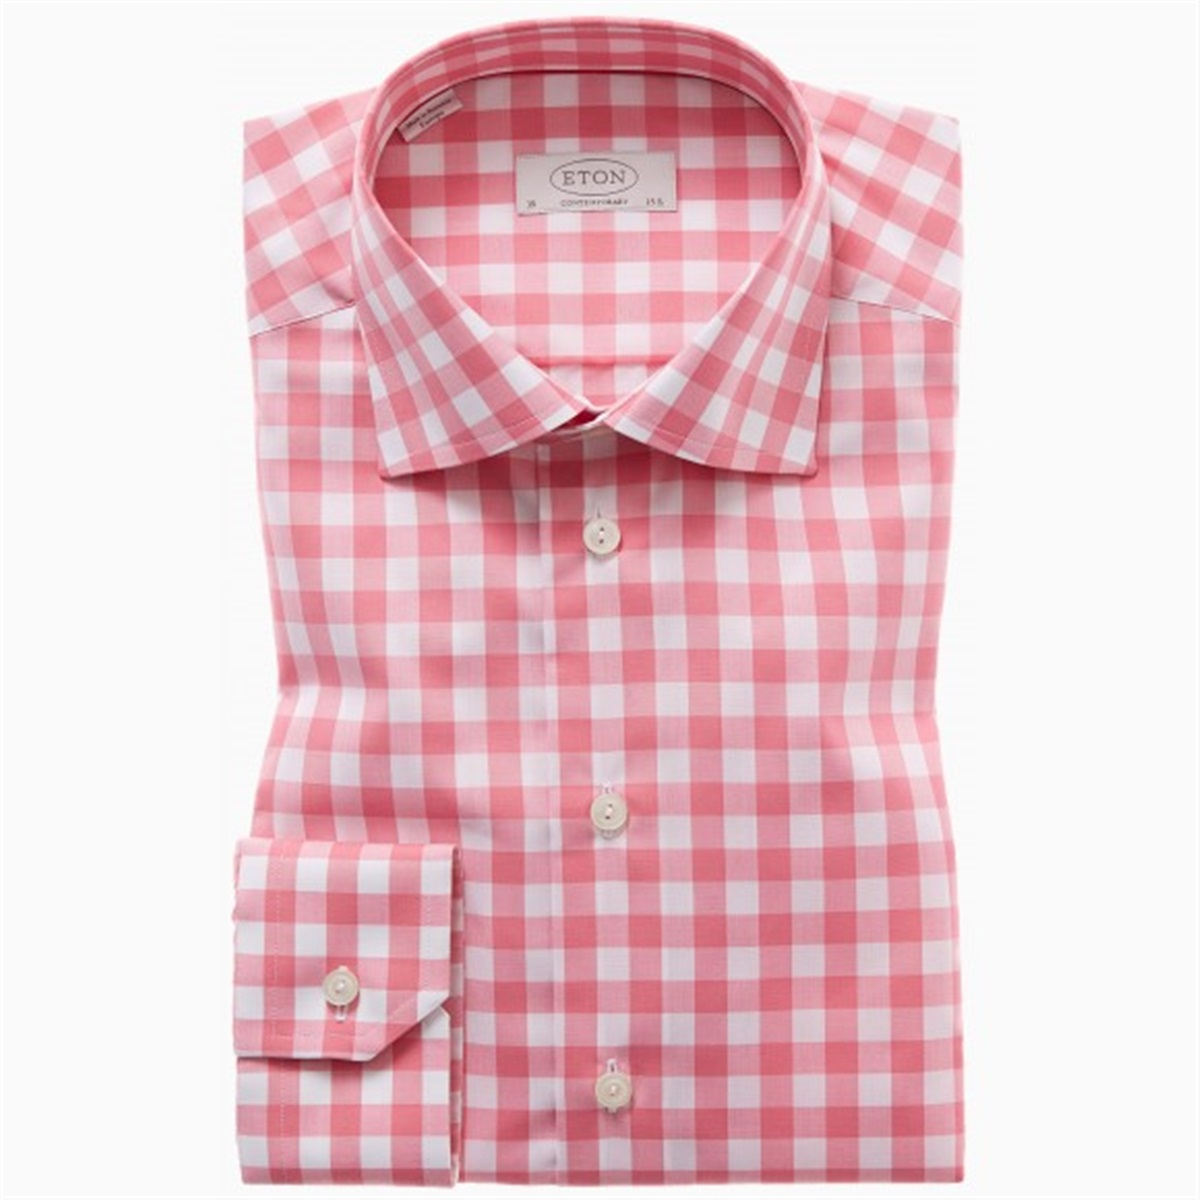 pink and white checkered shirt shirts rock